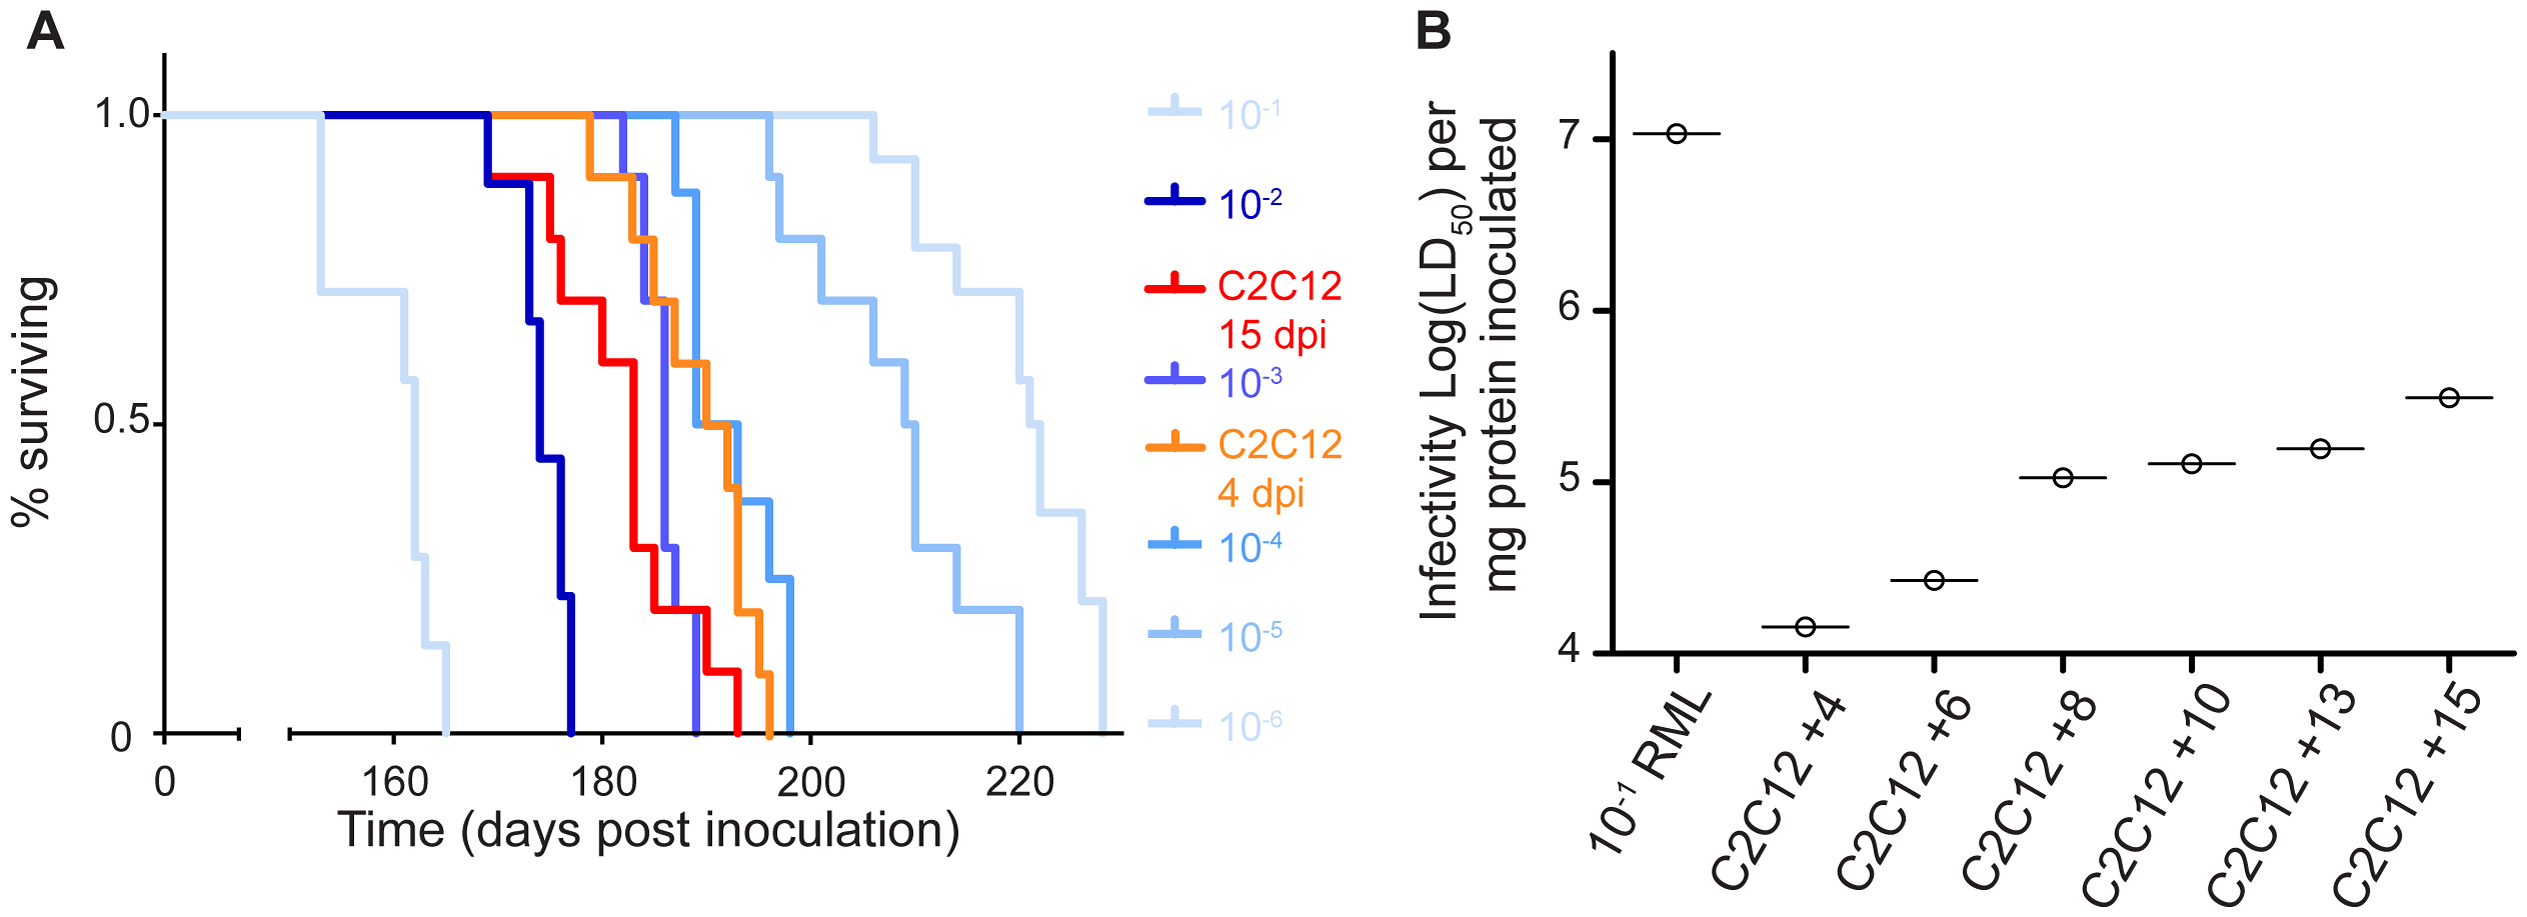 C2C12 myotubes replicate prions to high levels of infectivity.